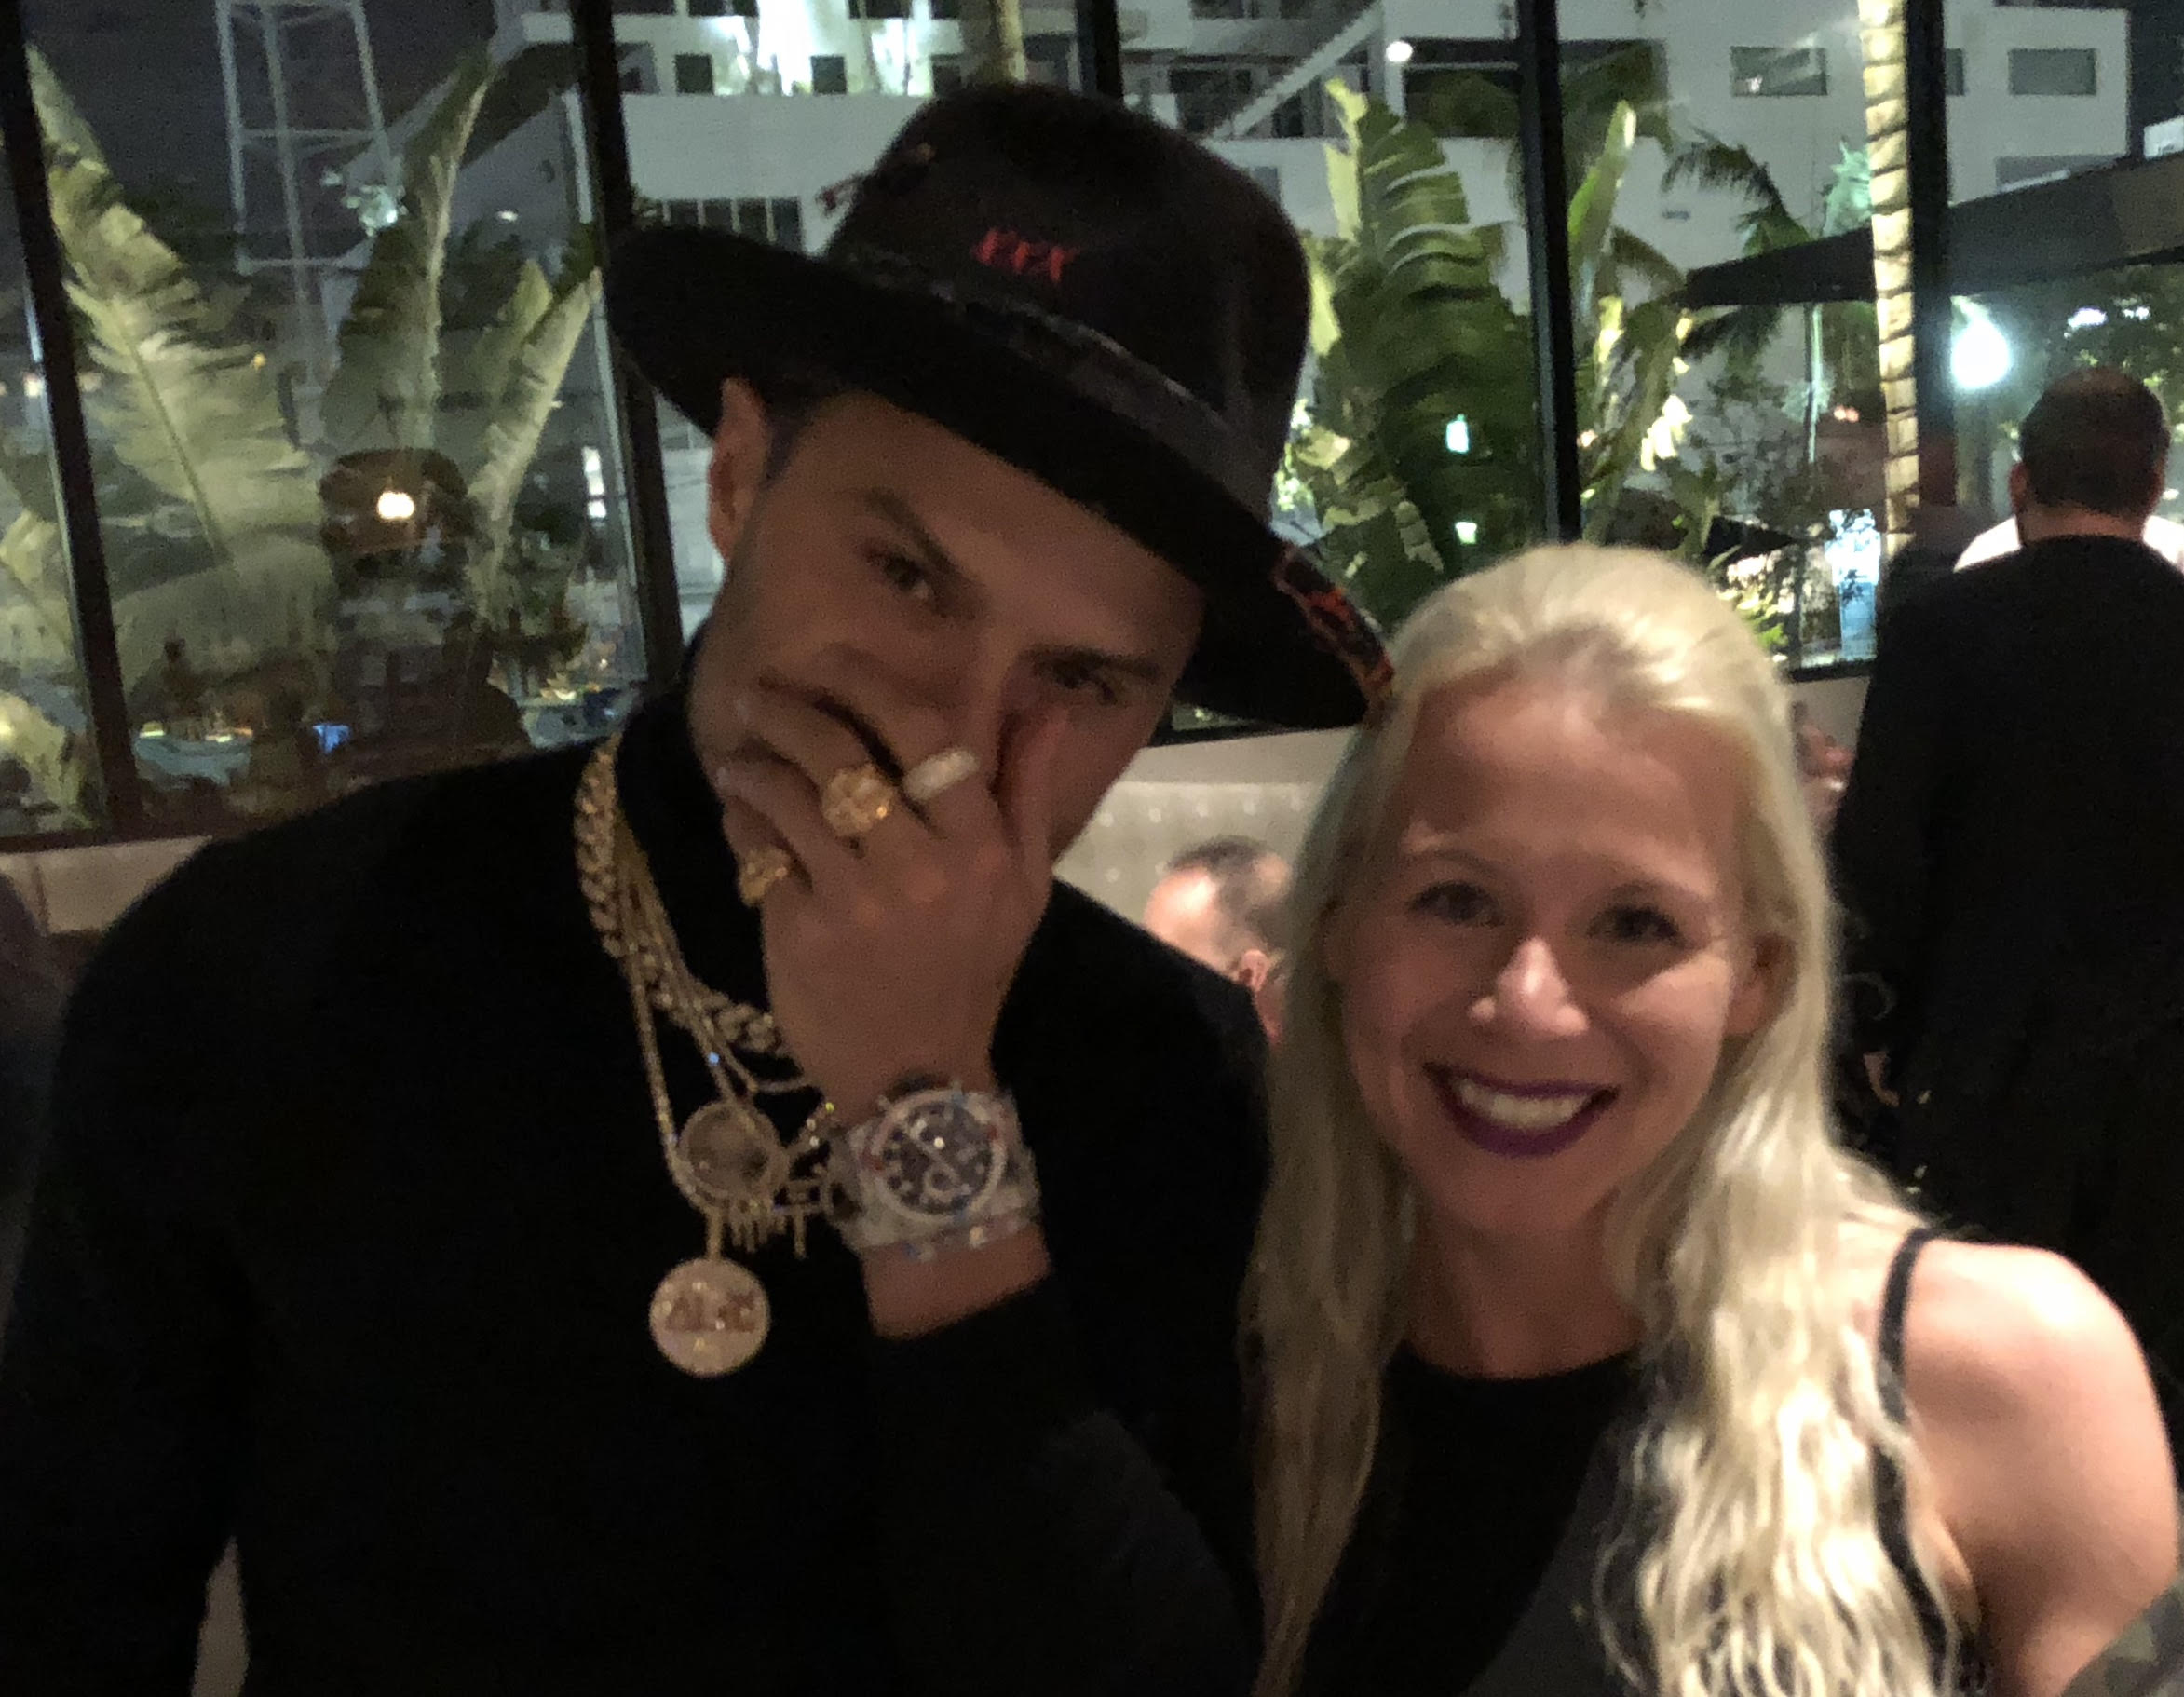 The 39-year old son of father (?) and mother(?) Alec Monopoly in 2018 photo. Alec Monopoly earned a  million dollar salary - leaving the net worth at 12 million in 2018